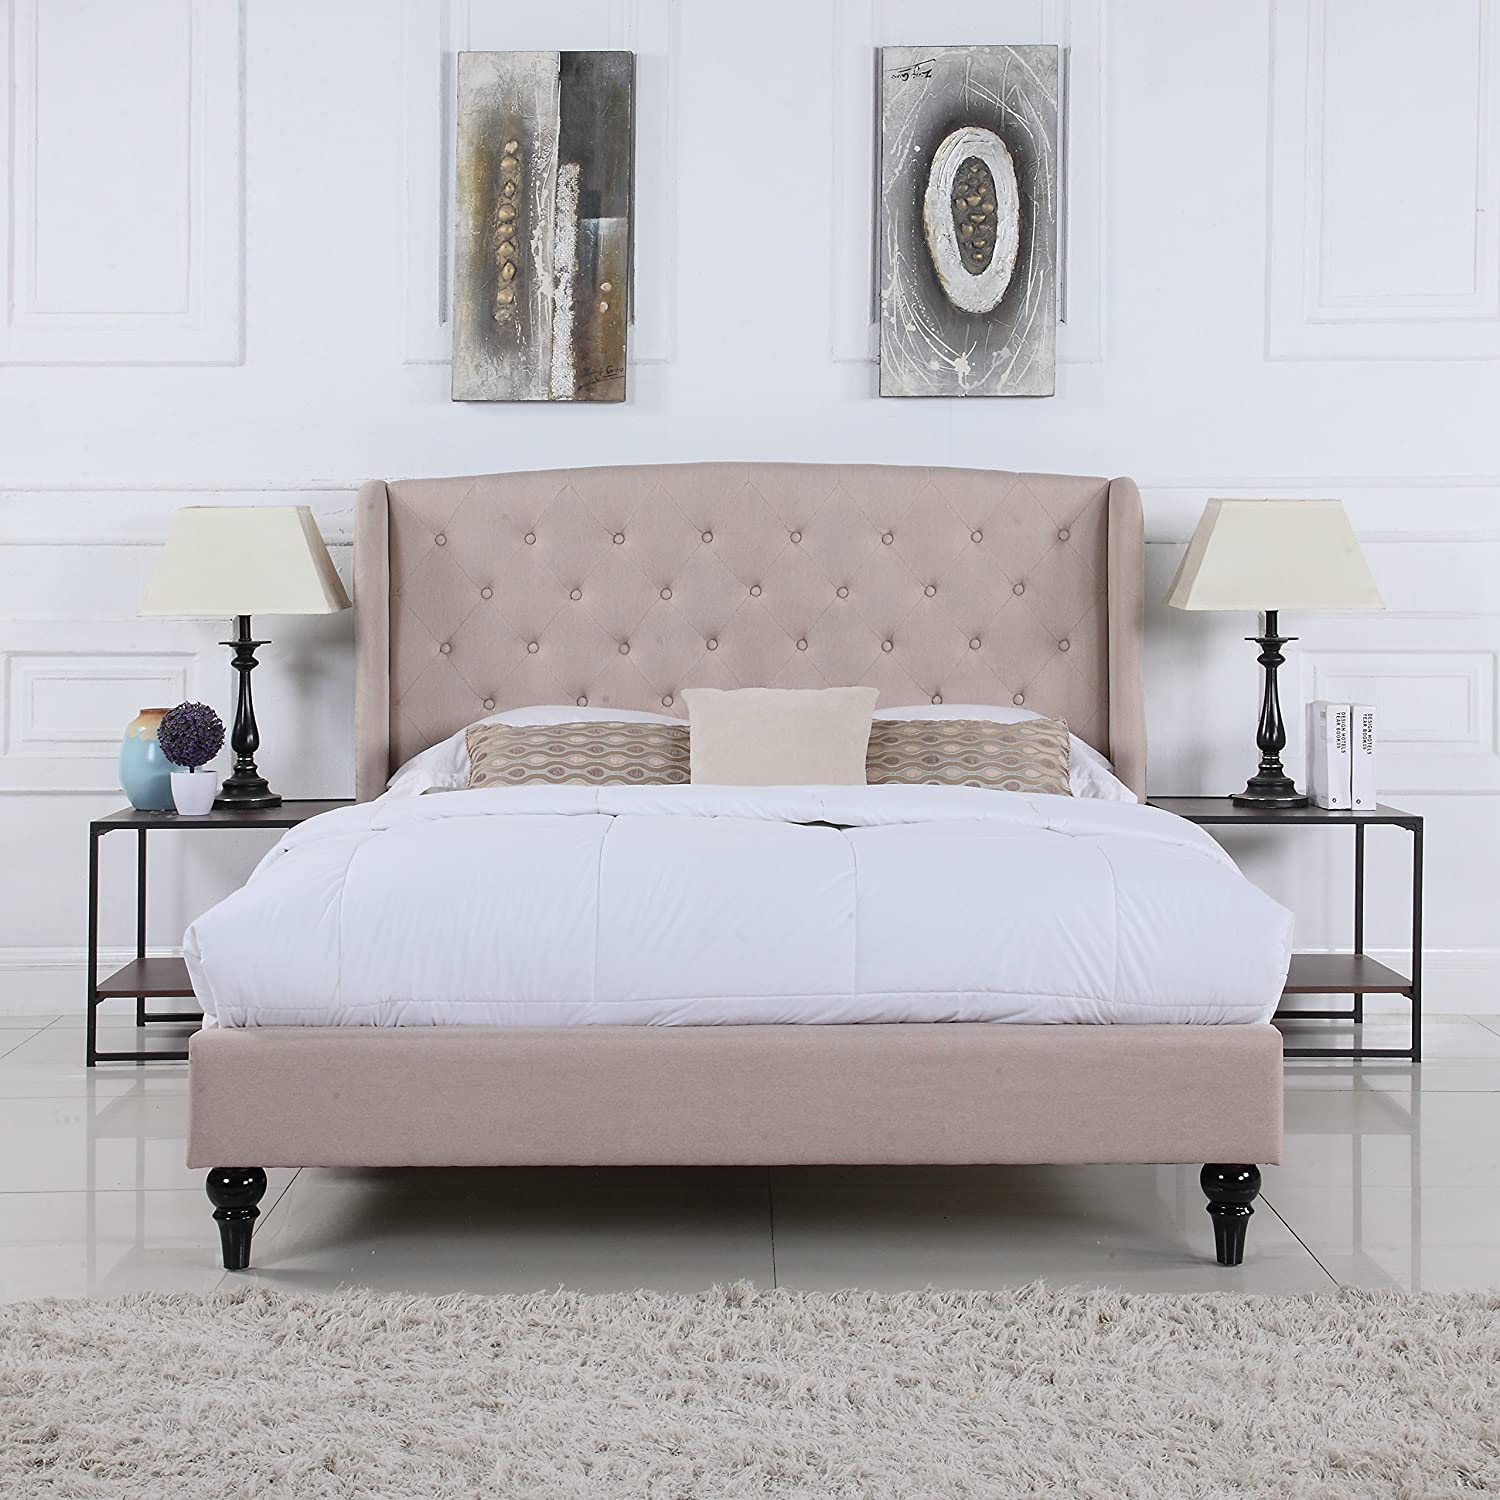 Luxury Bed Frames Queen Decor